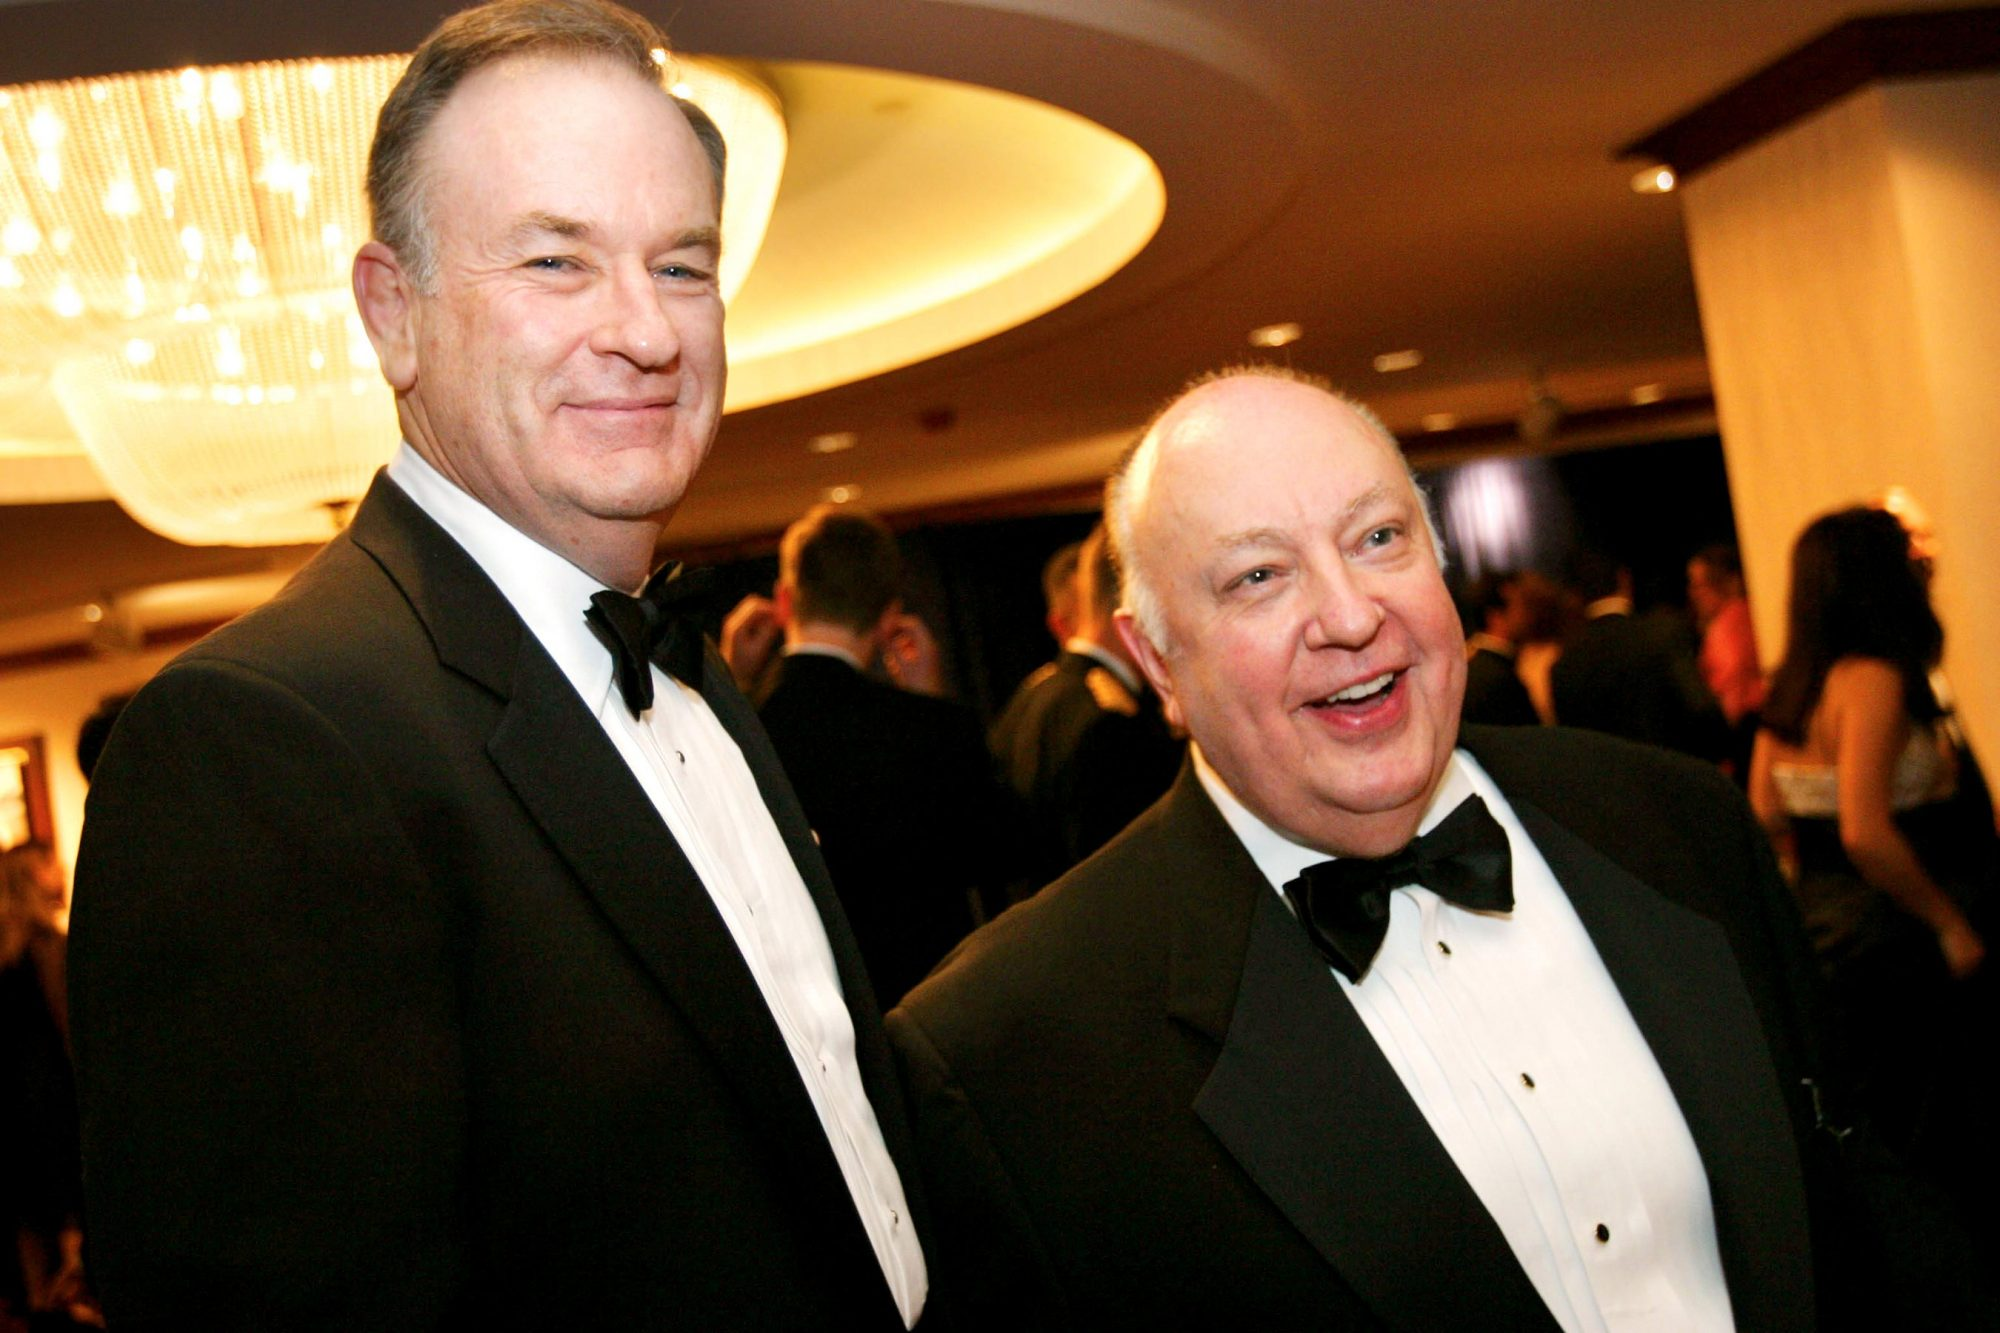 Bill O'Reilly, tv columnist, at left, shown here with Roger Ail